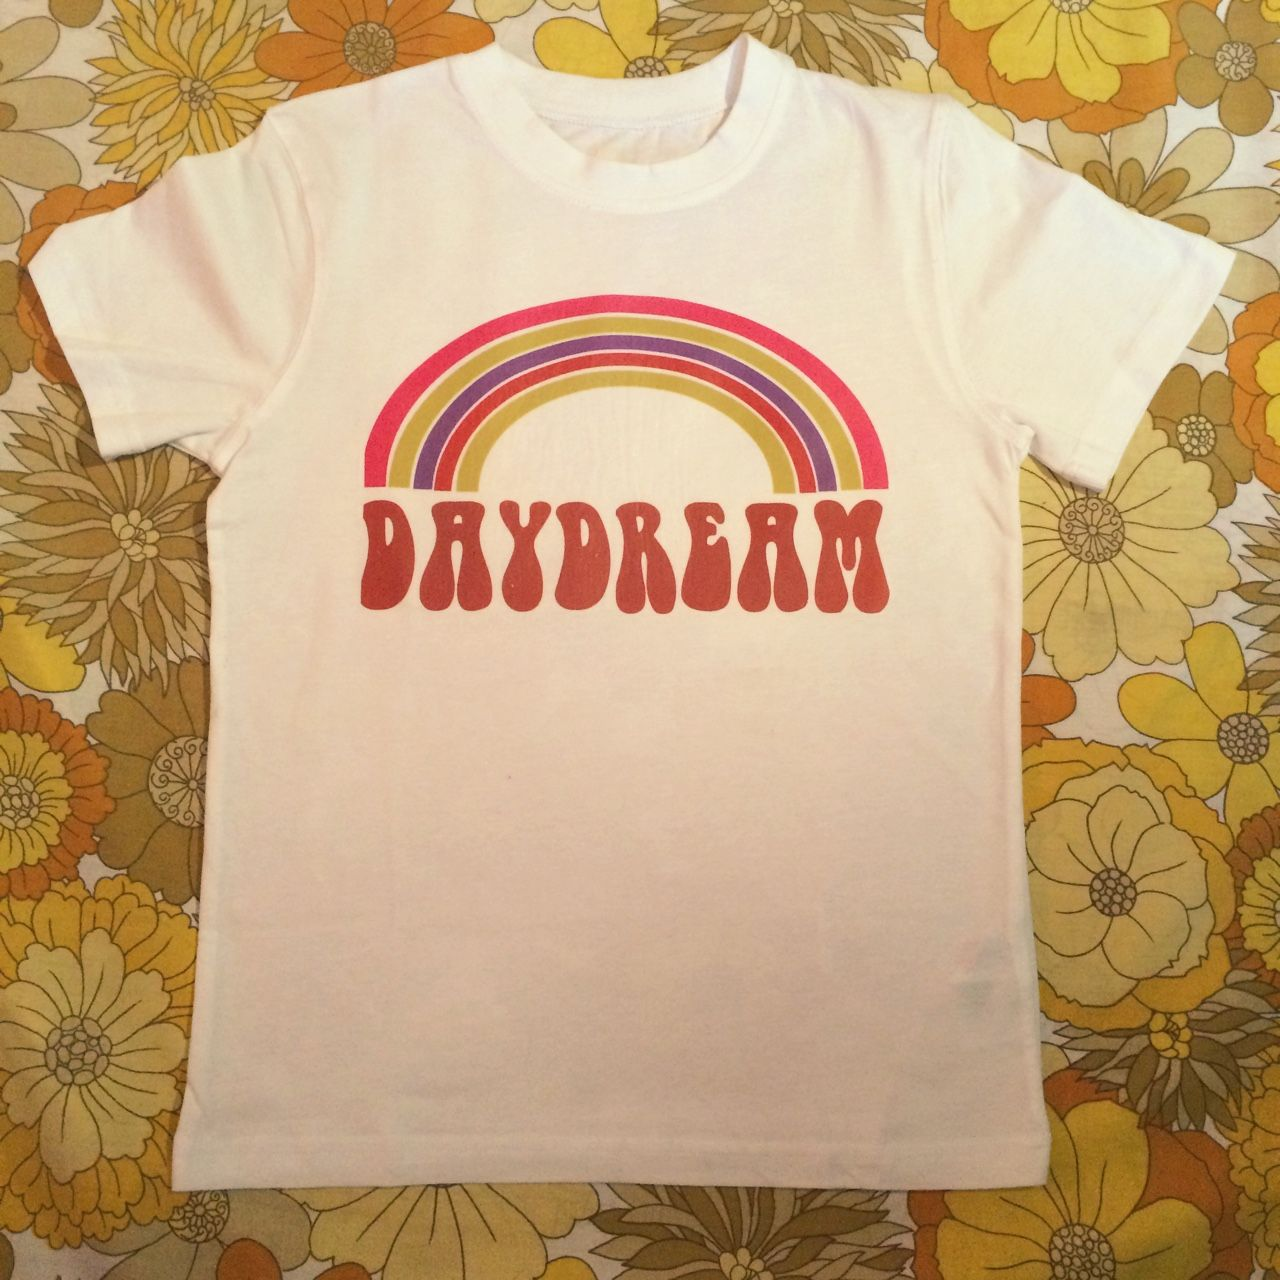 0a7de3cf73 Hippie boho vintage retro 60s 70s: white rainbow daydream tshirt It is  printed onto a quality thick neckline t-shirt. It is also unisex PM ME TO  BUY.